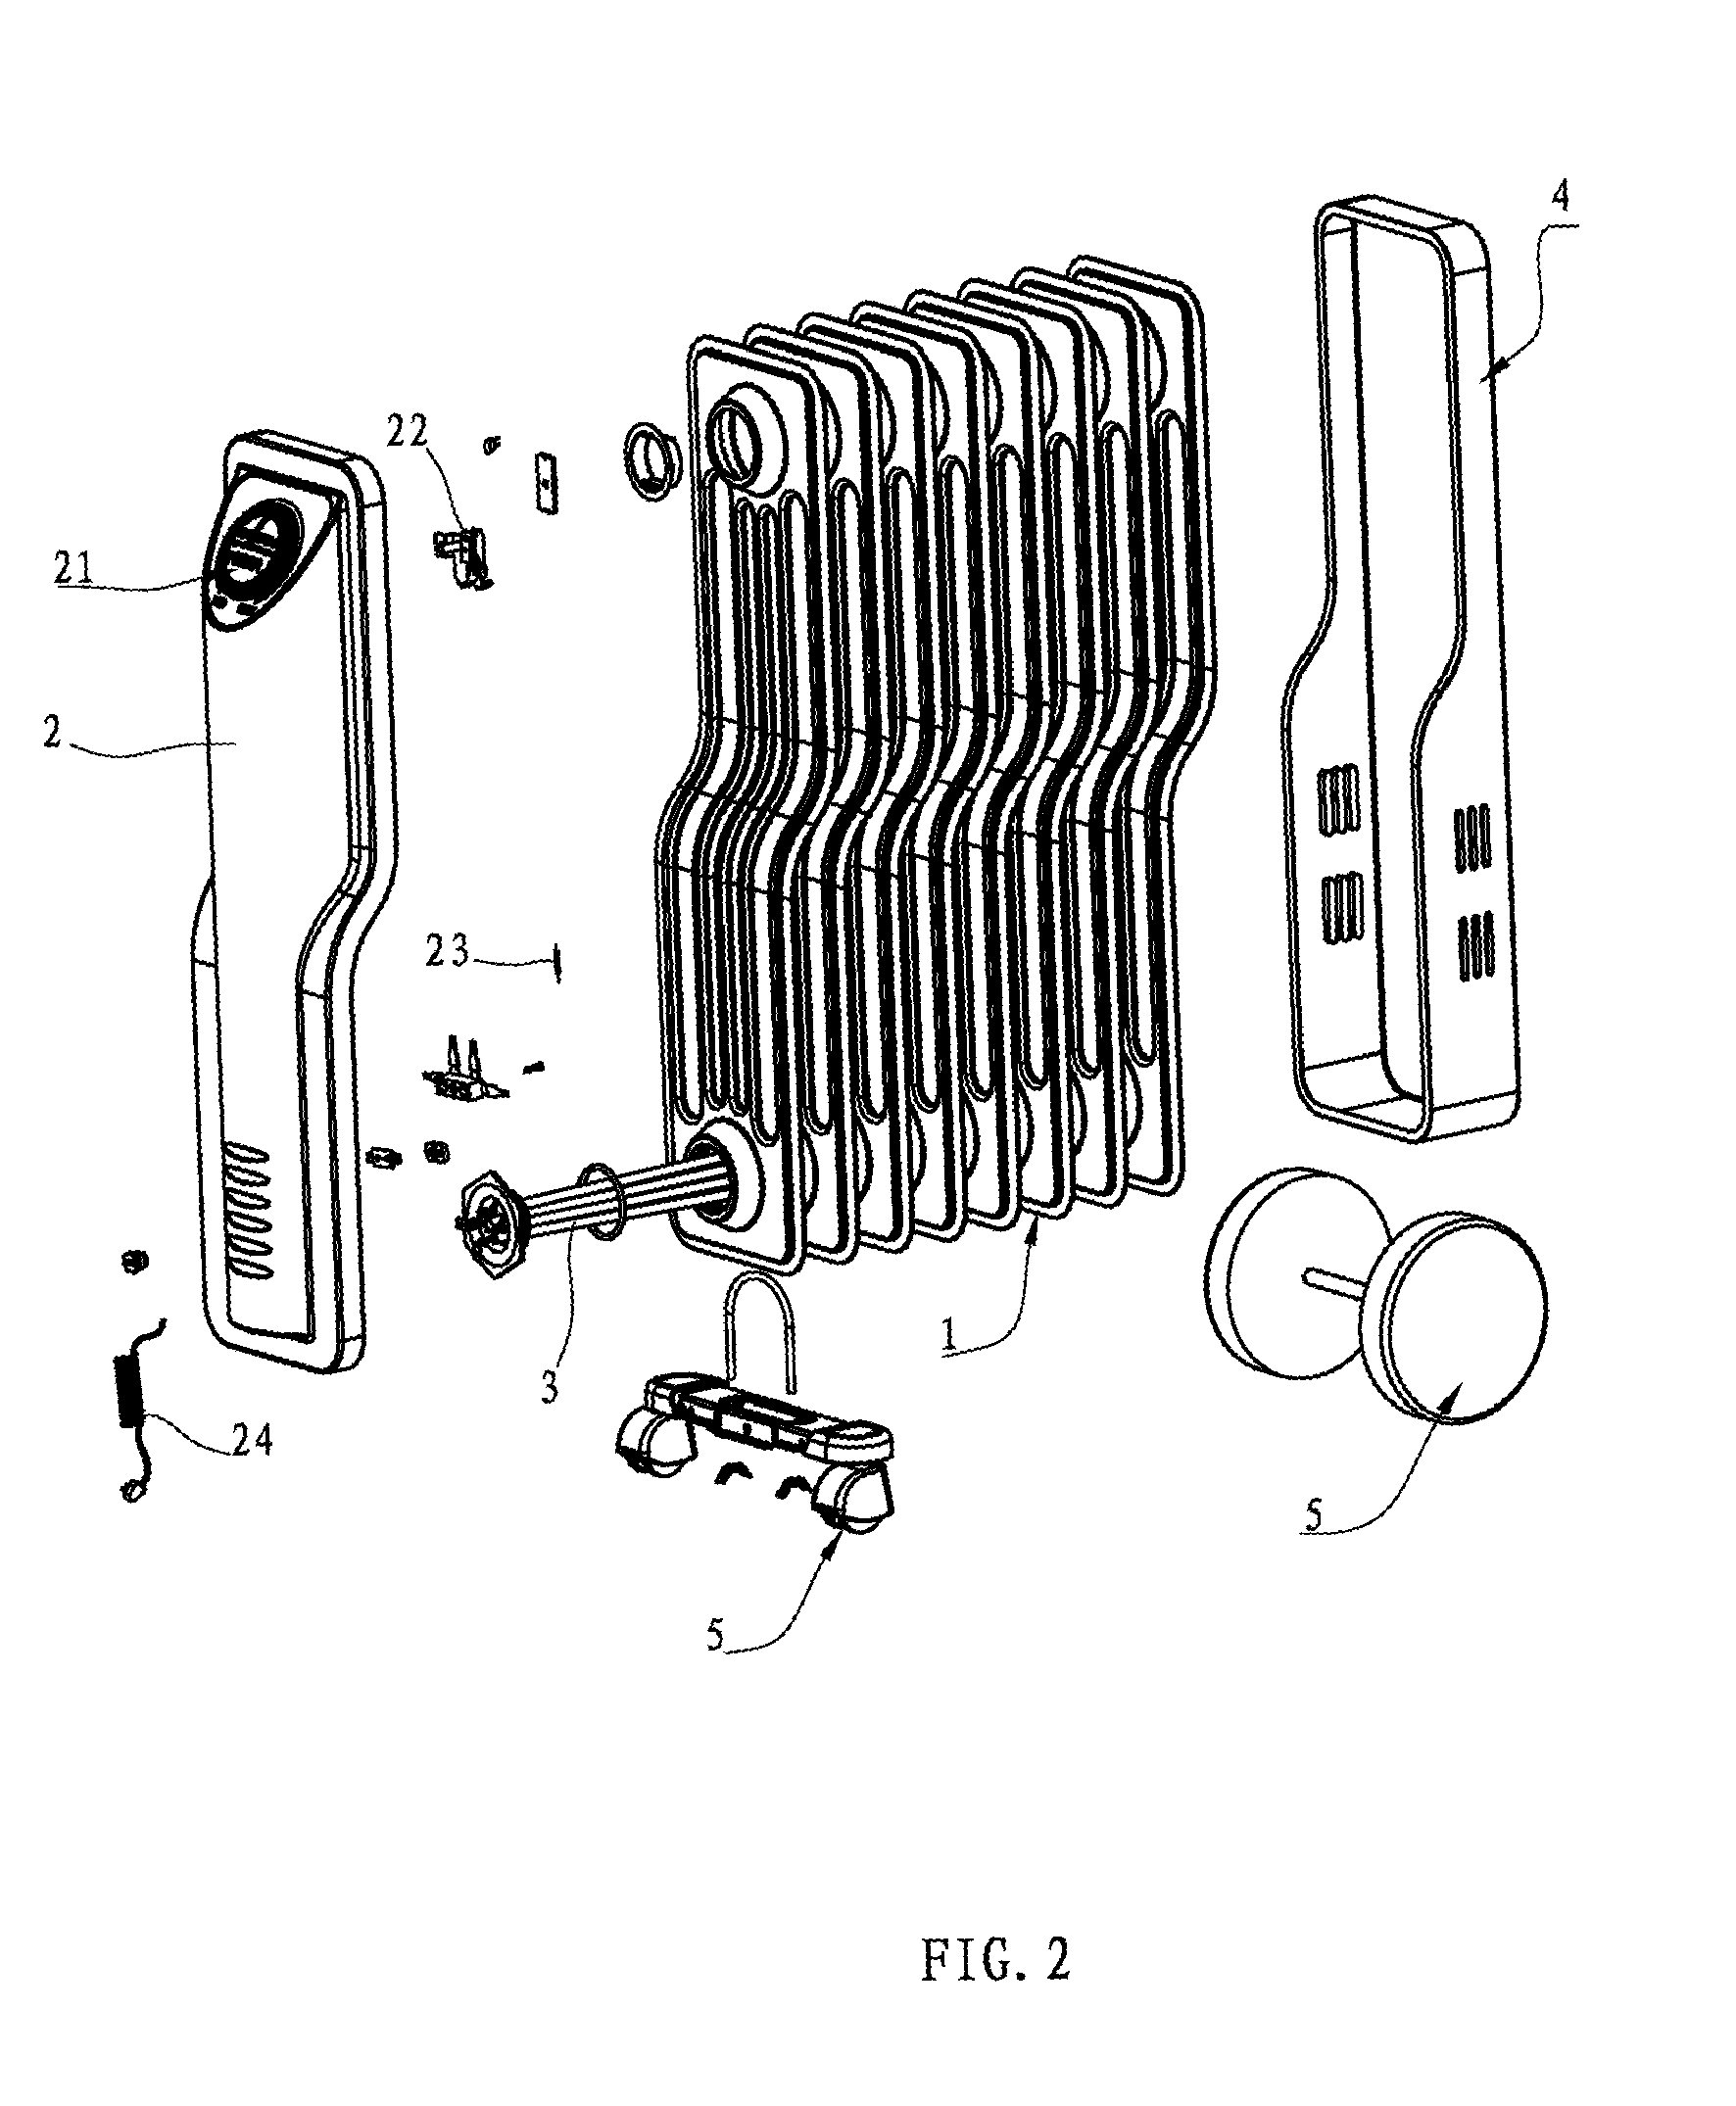 Electric Heater Diagram